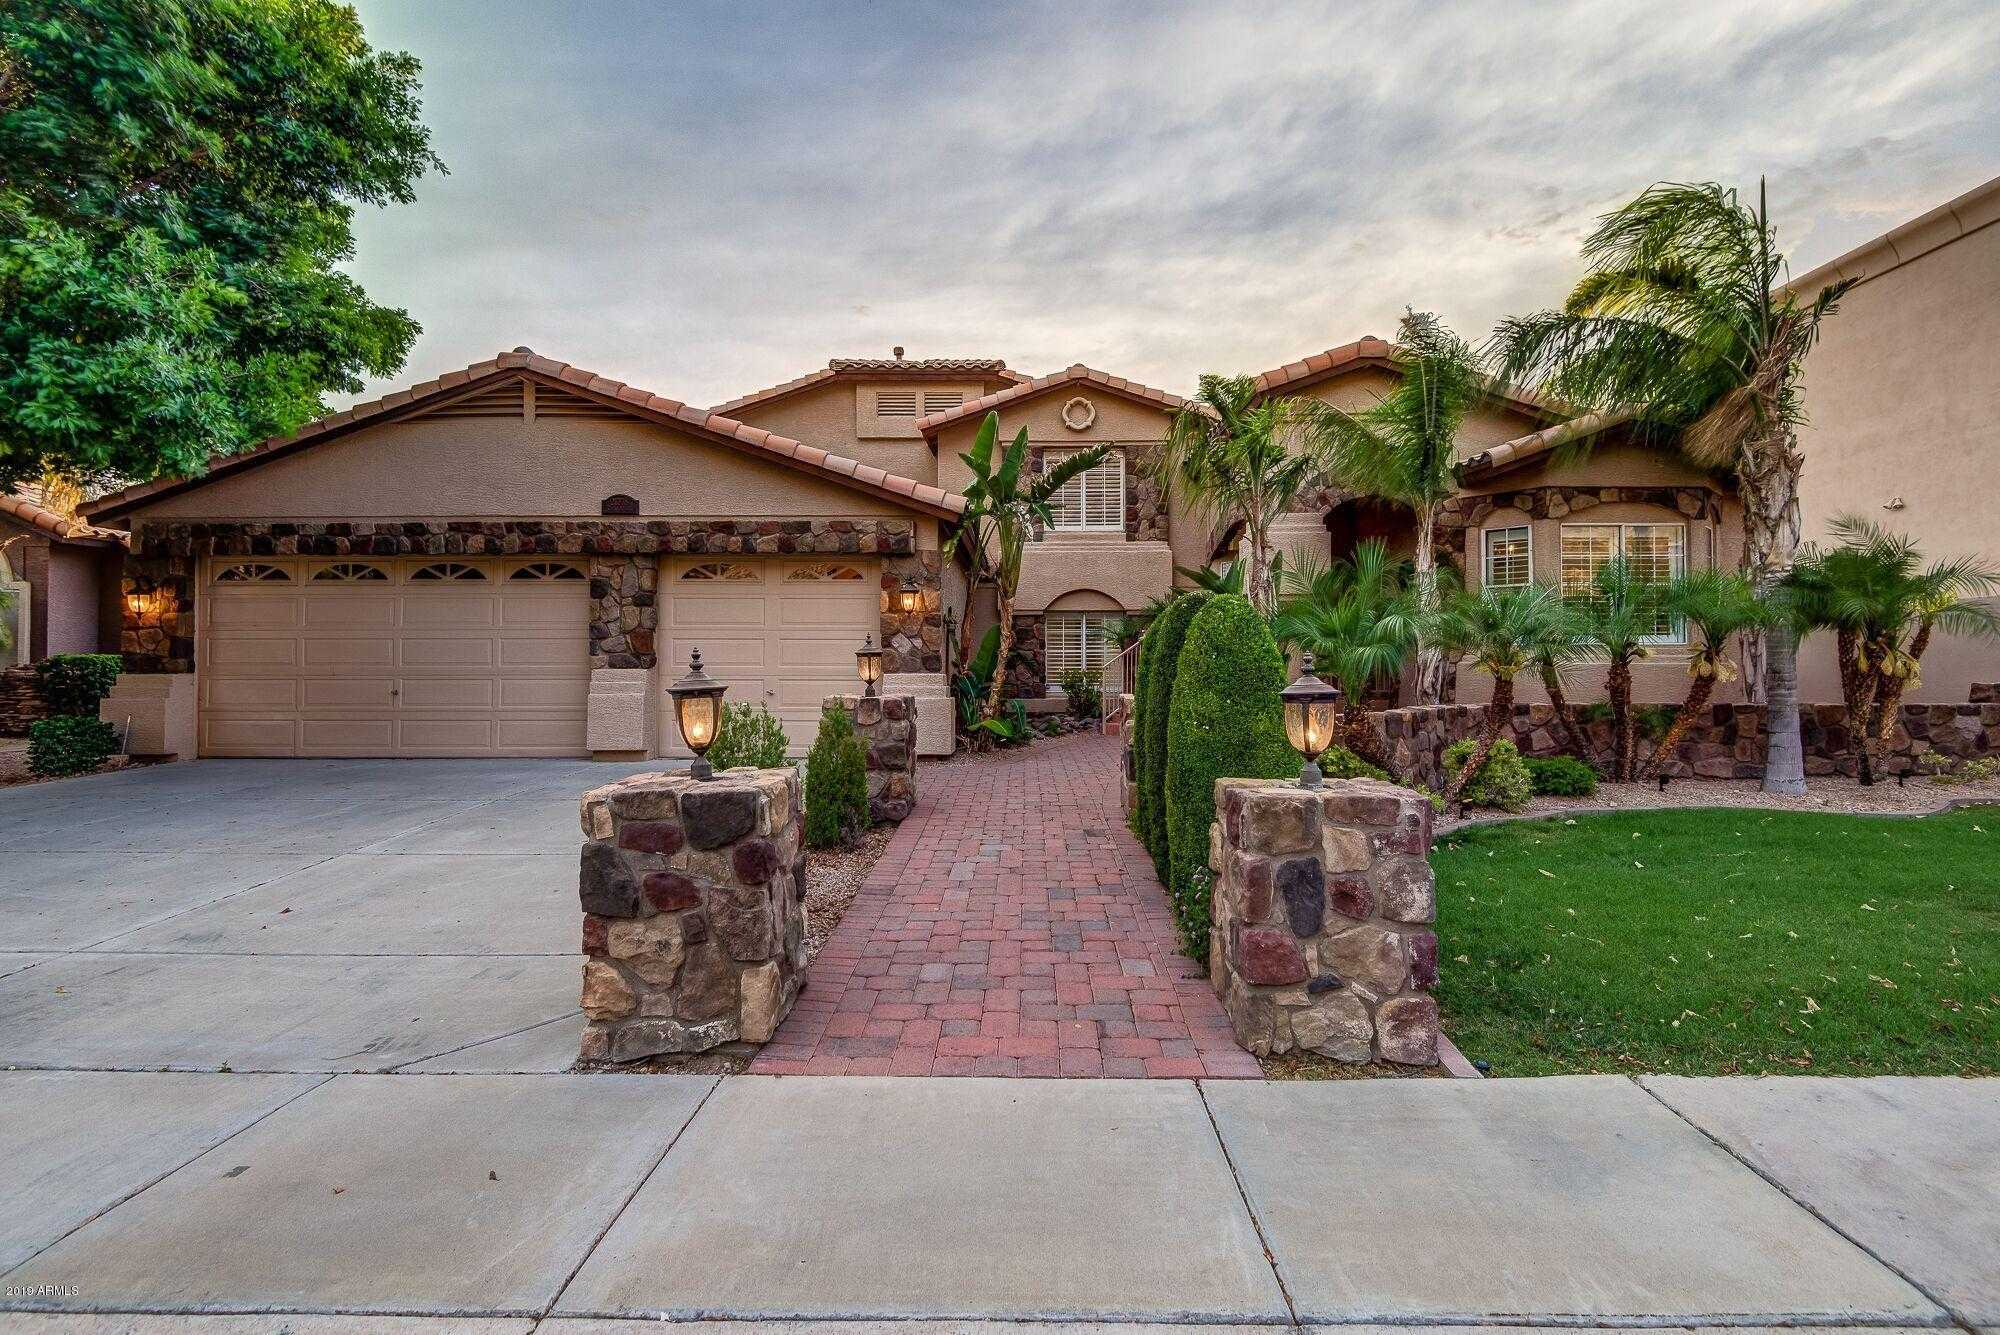 $725,000 - 5Br/3Ba - Home for Sale in Arrowhead Lakes - Estates At Arrowhead Phase One B, Glendale